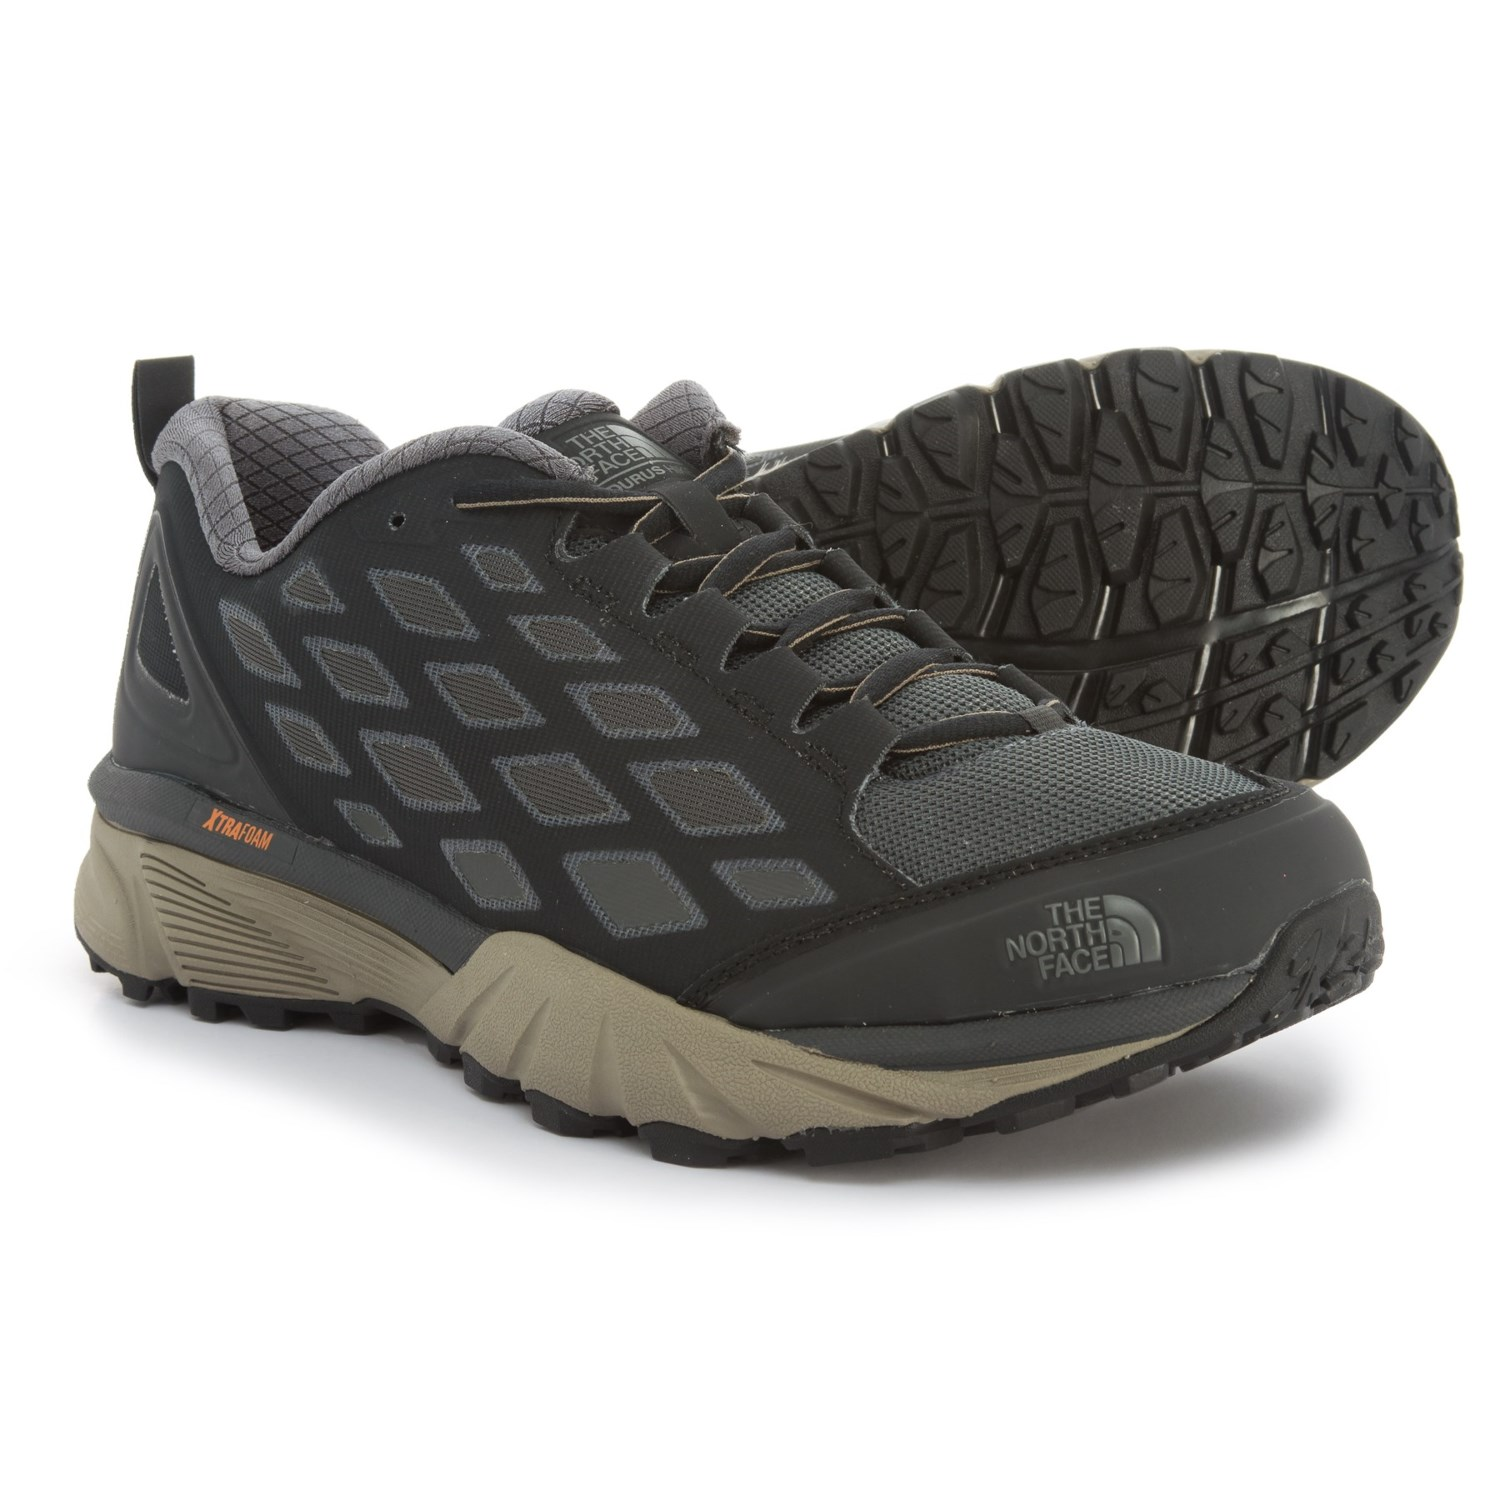 026bb795bcda The North Face Endurus TR Trail Running Shoes (For Men ...